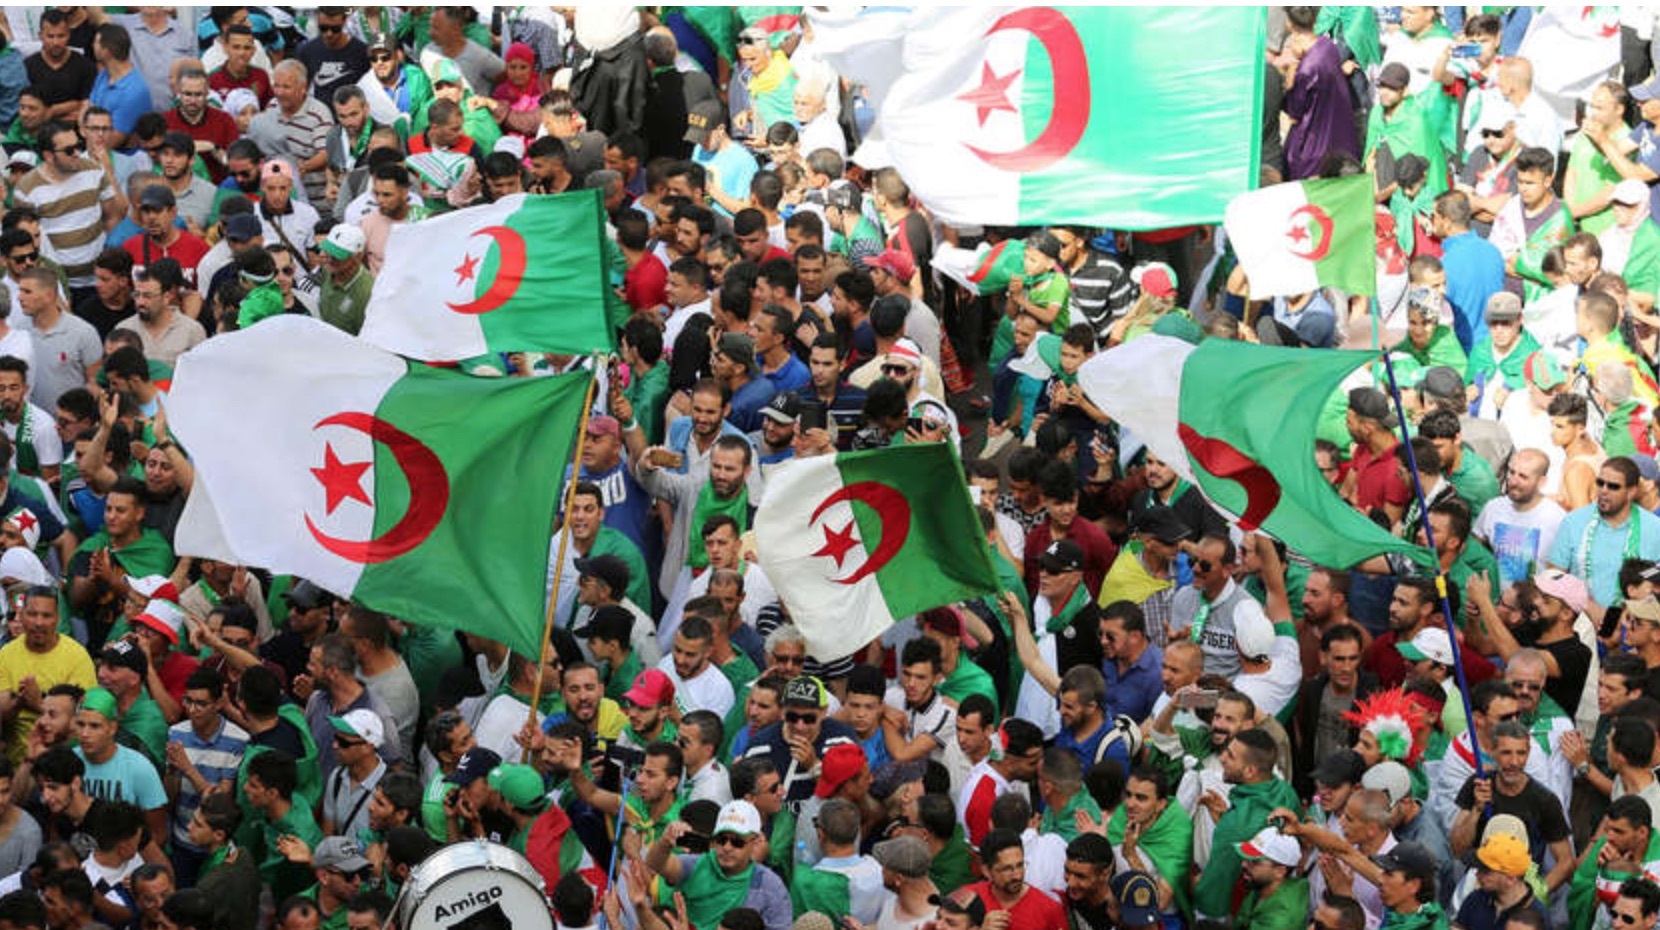 Algeria's Hirak marches on in the face of official warnings